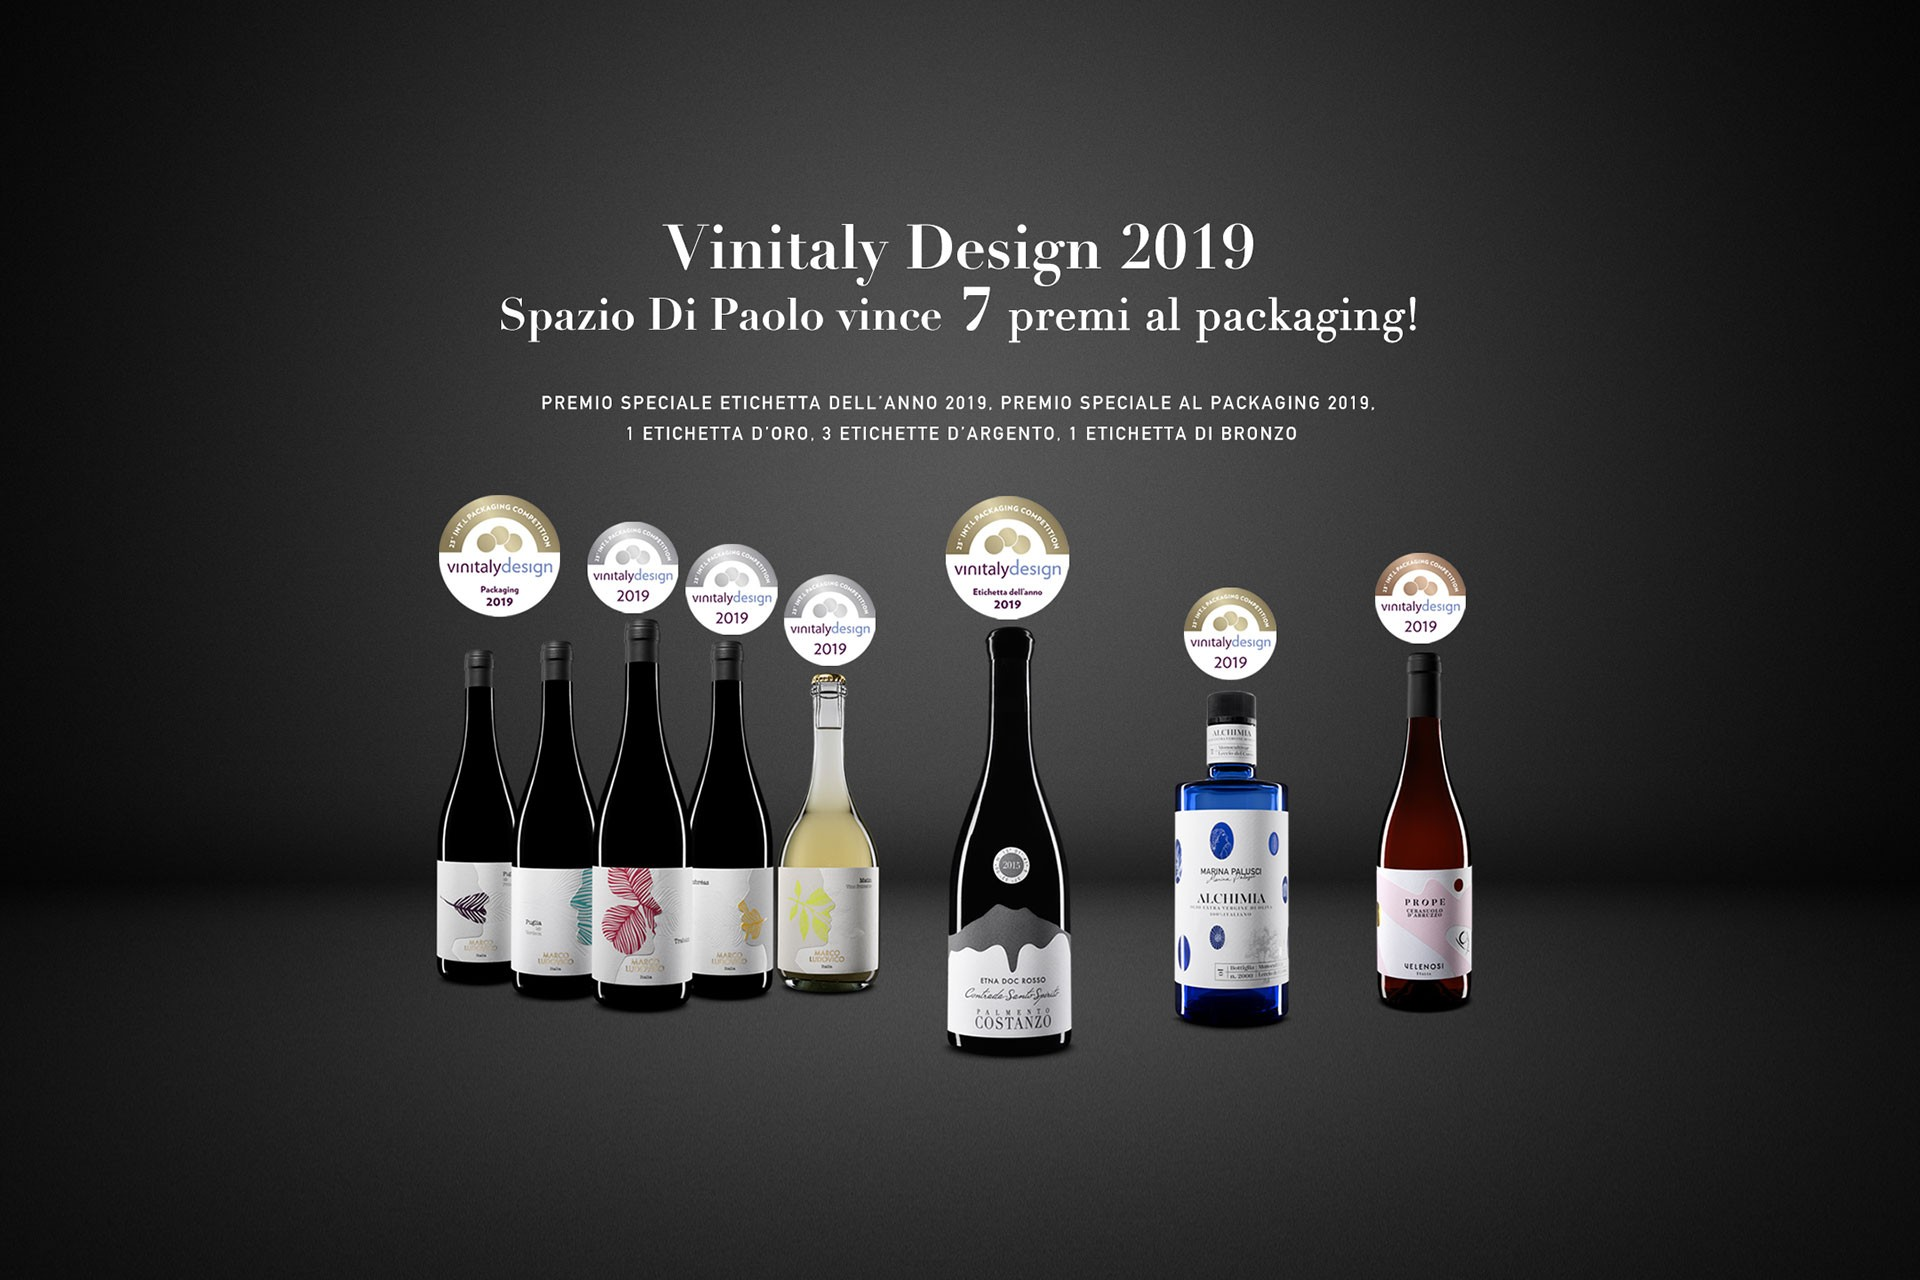 VINITALY_2019_AWARD_INTERNATIONAL_PACKAGING_COMPETITION_VINITALY_SPAZIO_DI_PAOLO_MARIO_DI_PAOLO_WINE_DESIGN_WINNER